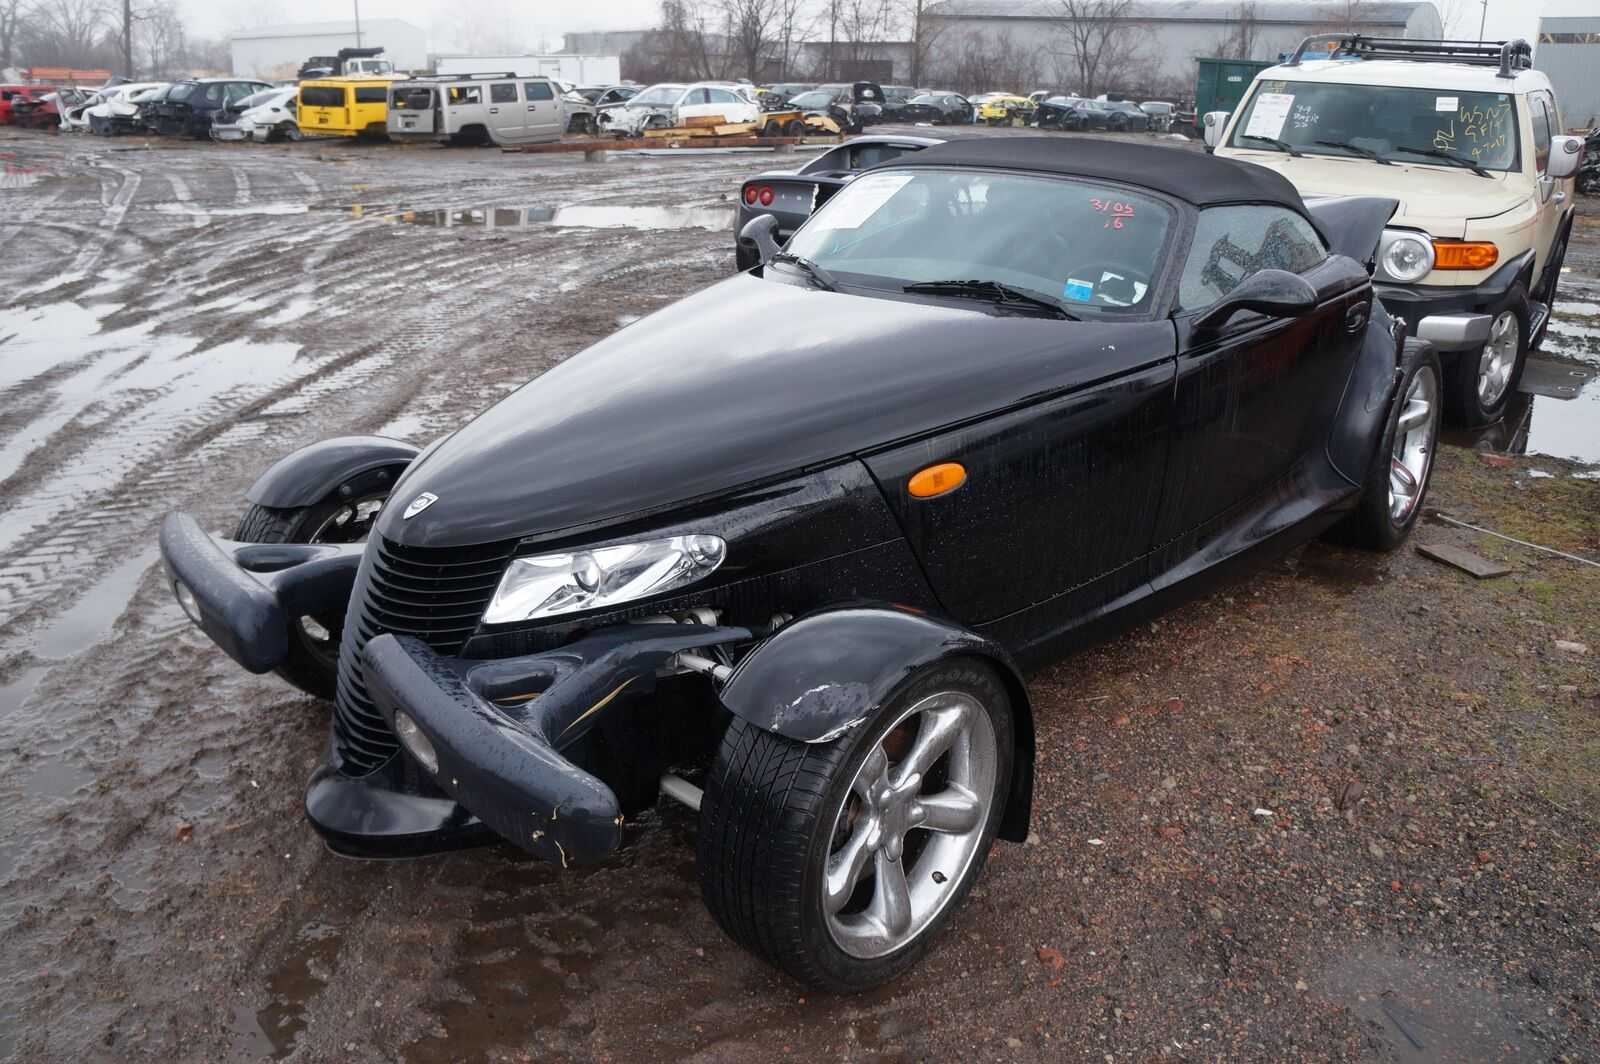 Plymouth Prowler Wiring Harness Explained Diagrams Dash Panel Frame Duct Wire 4865387 Oem 2010